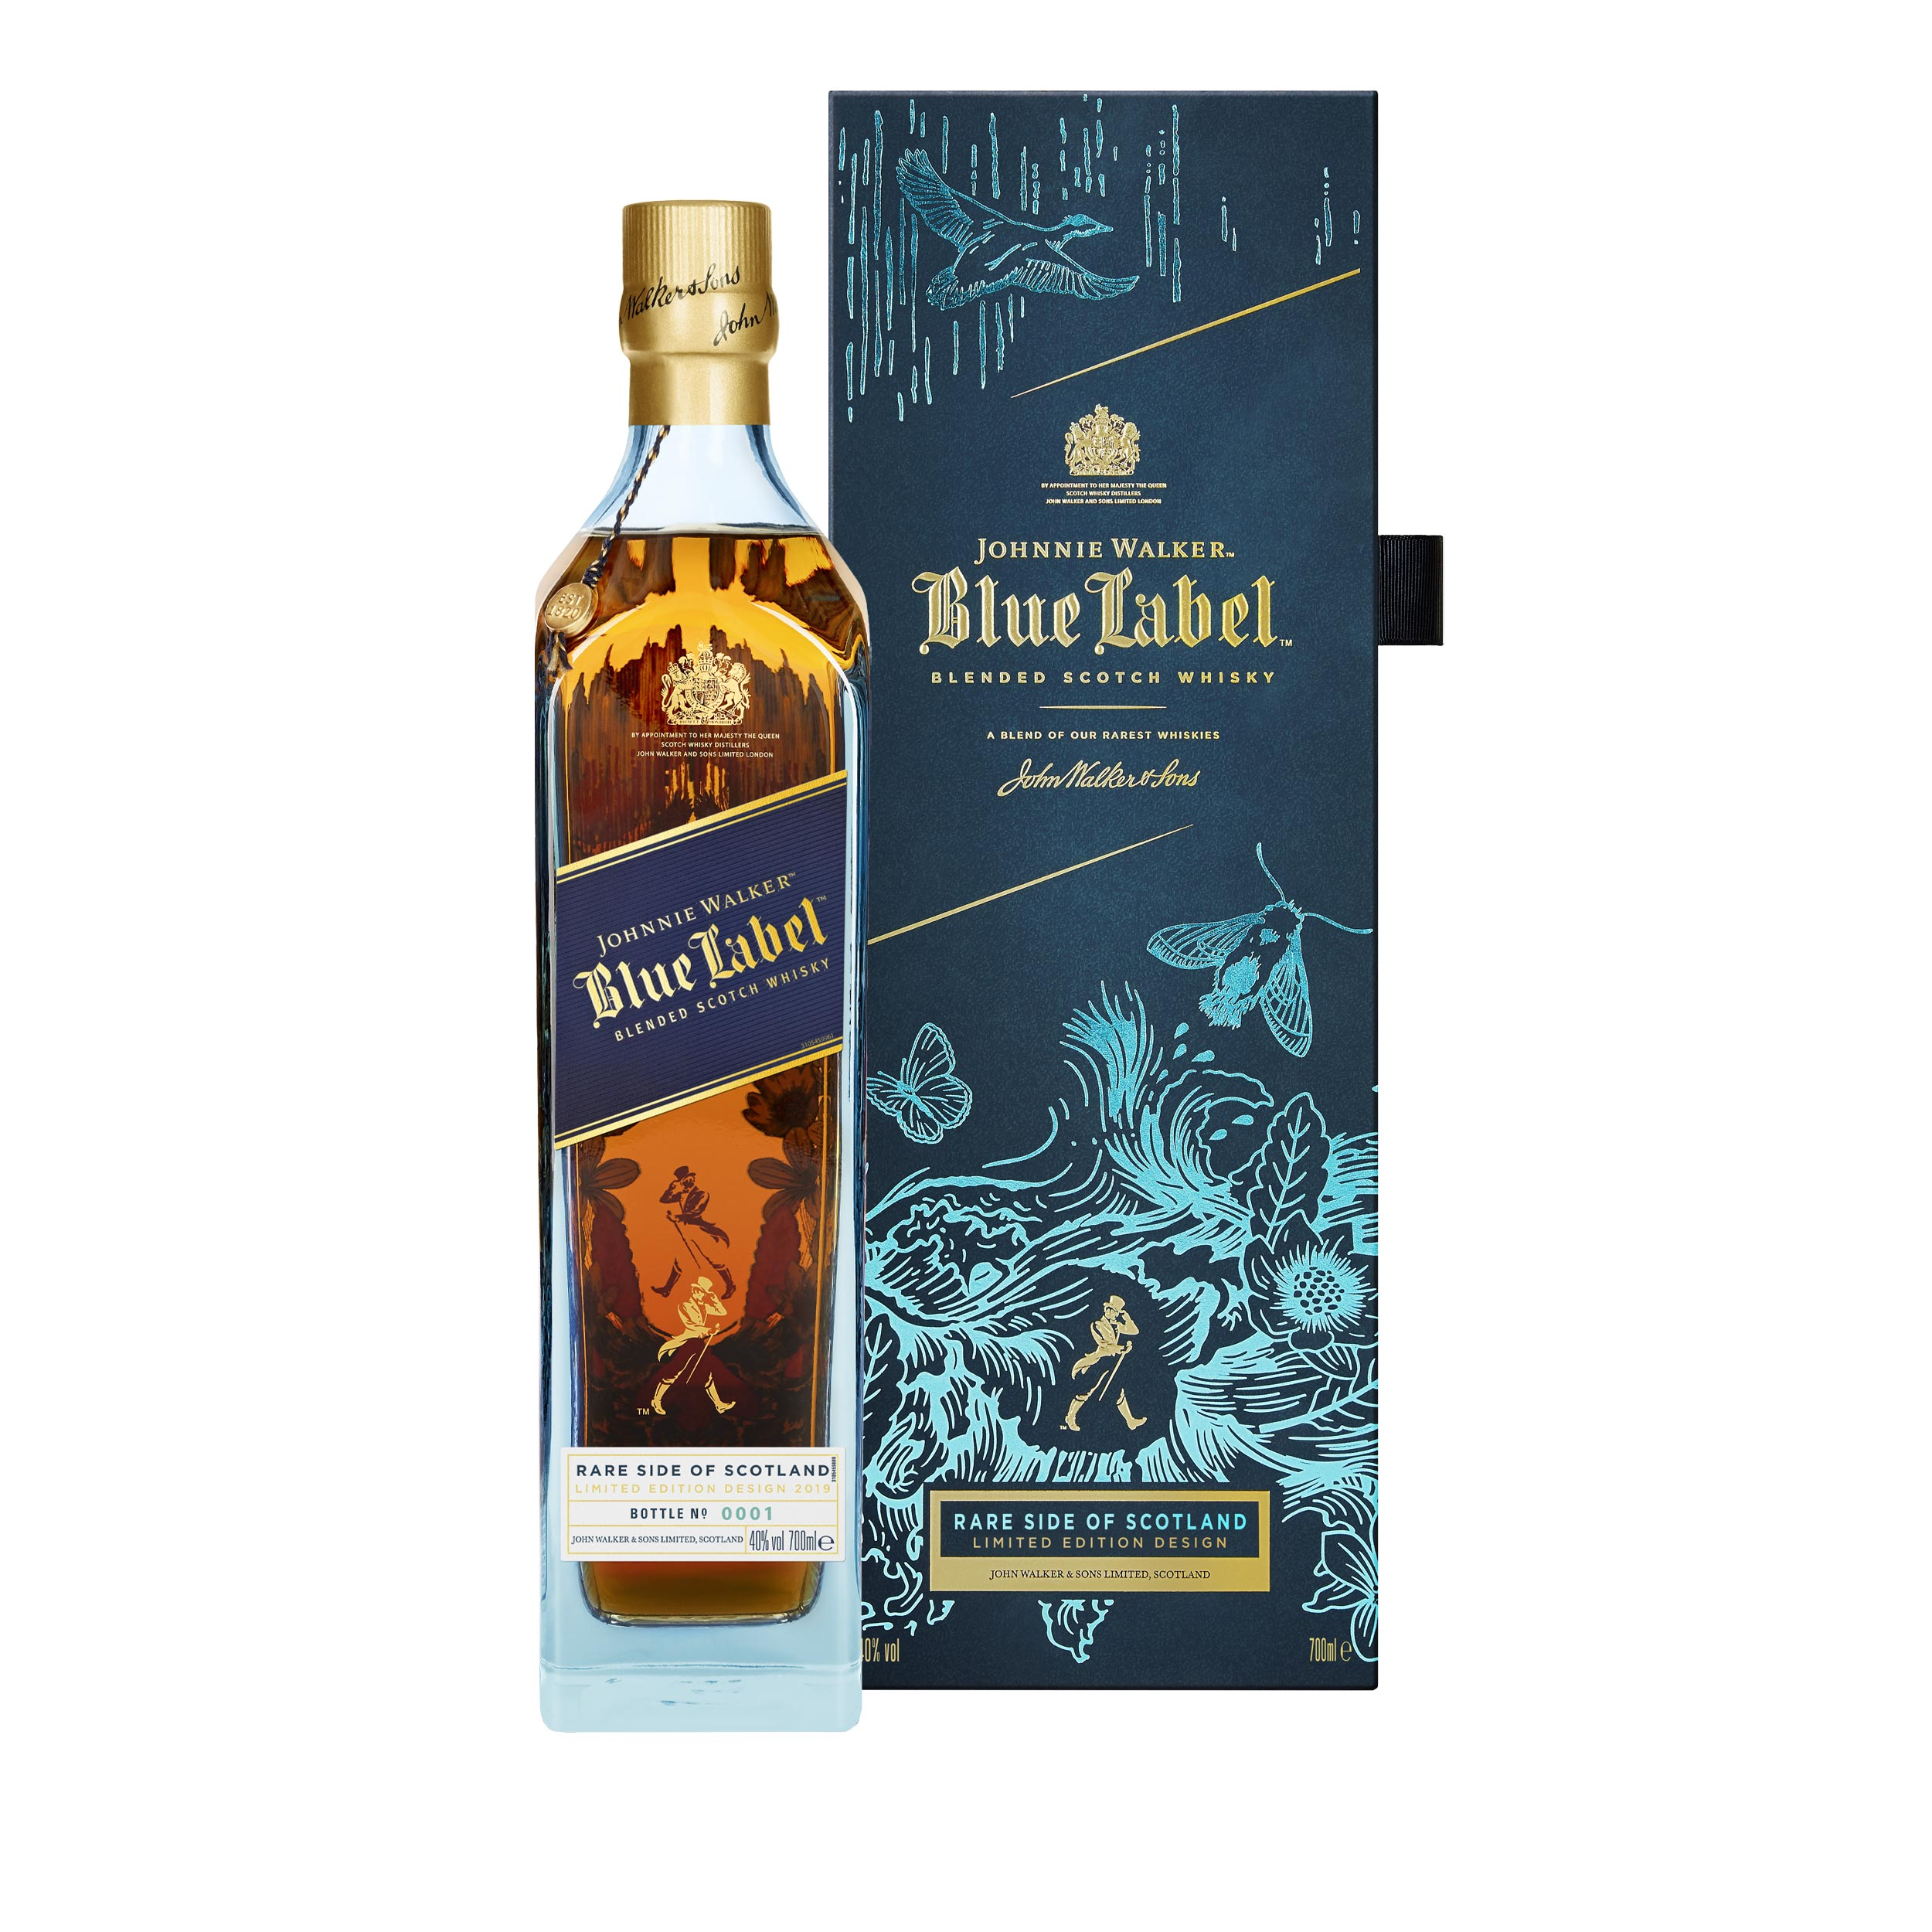 Johnnie Walker Blue Label Rare Side of Scotland Limited Edition 70cl